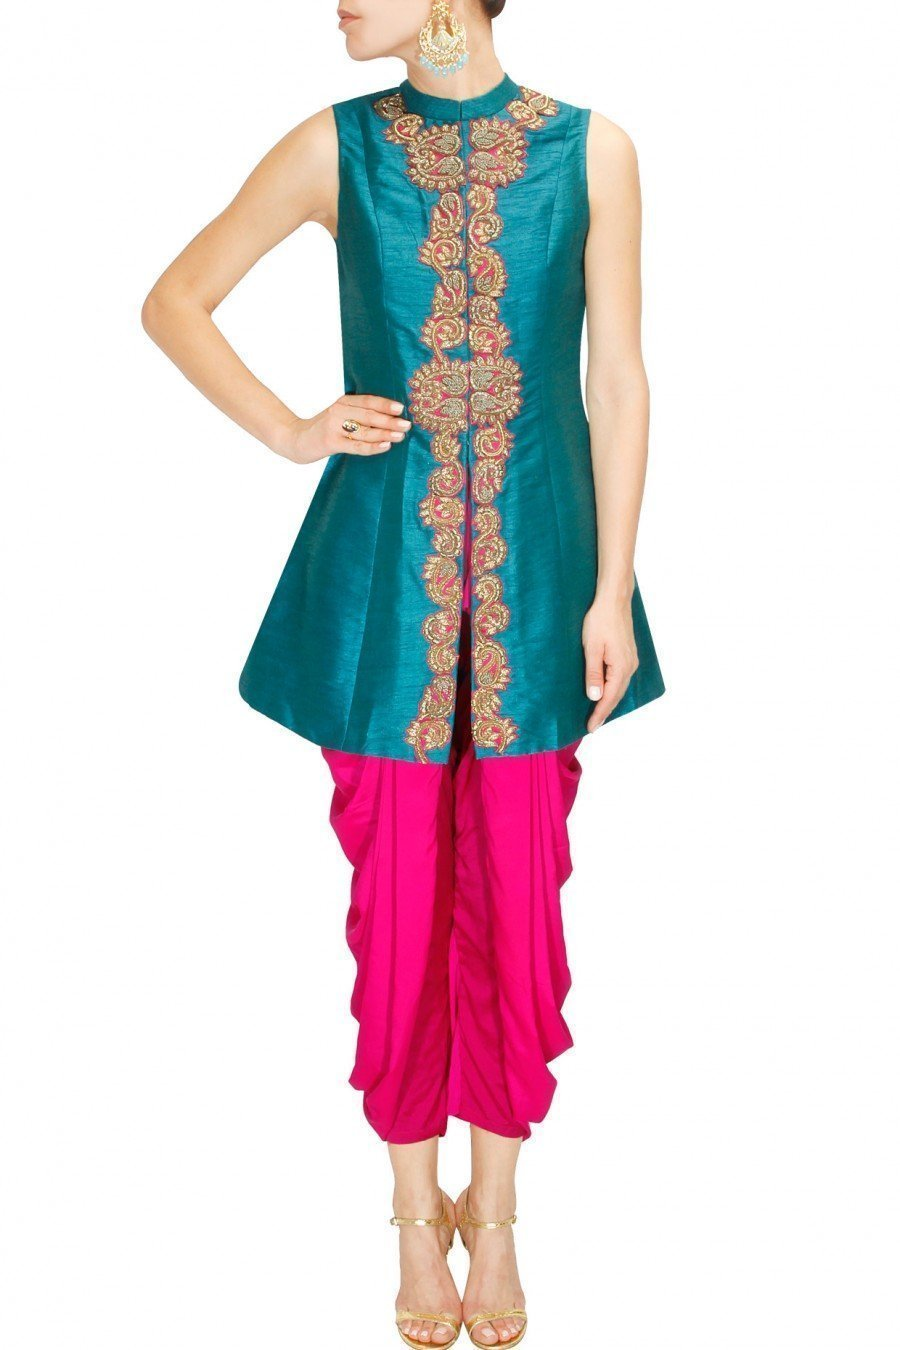 Teal Blue Zardozi Jacket and Fuschia Pink Dhoti Pants